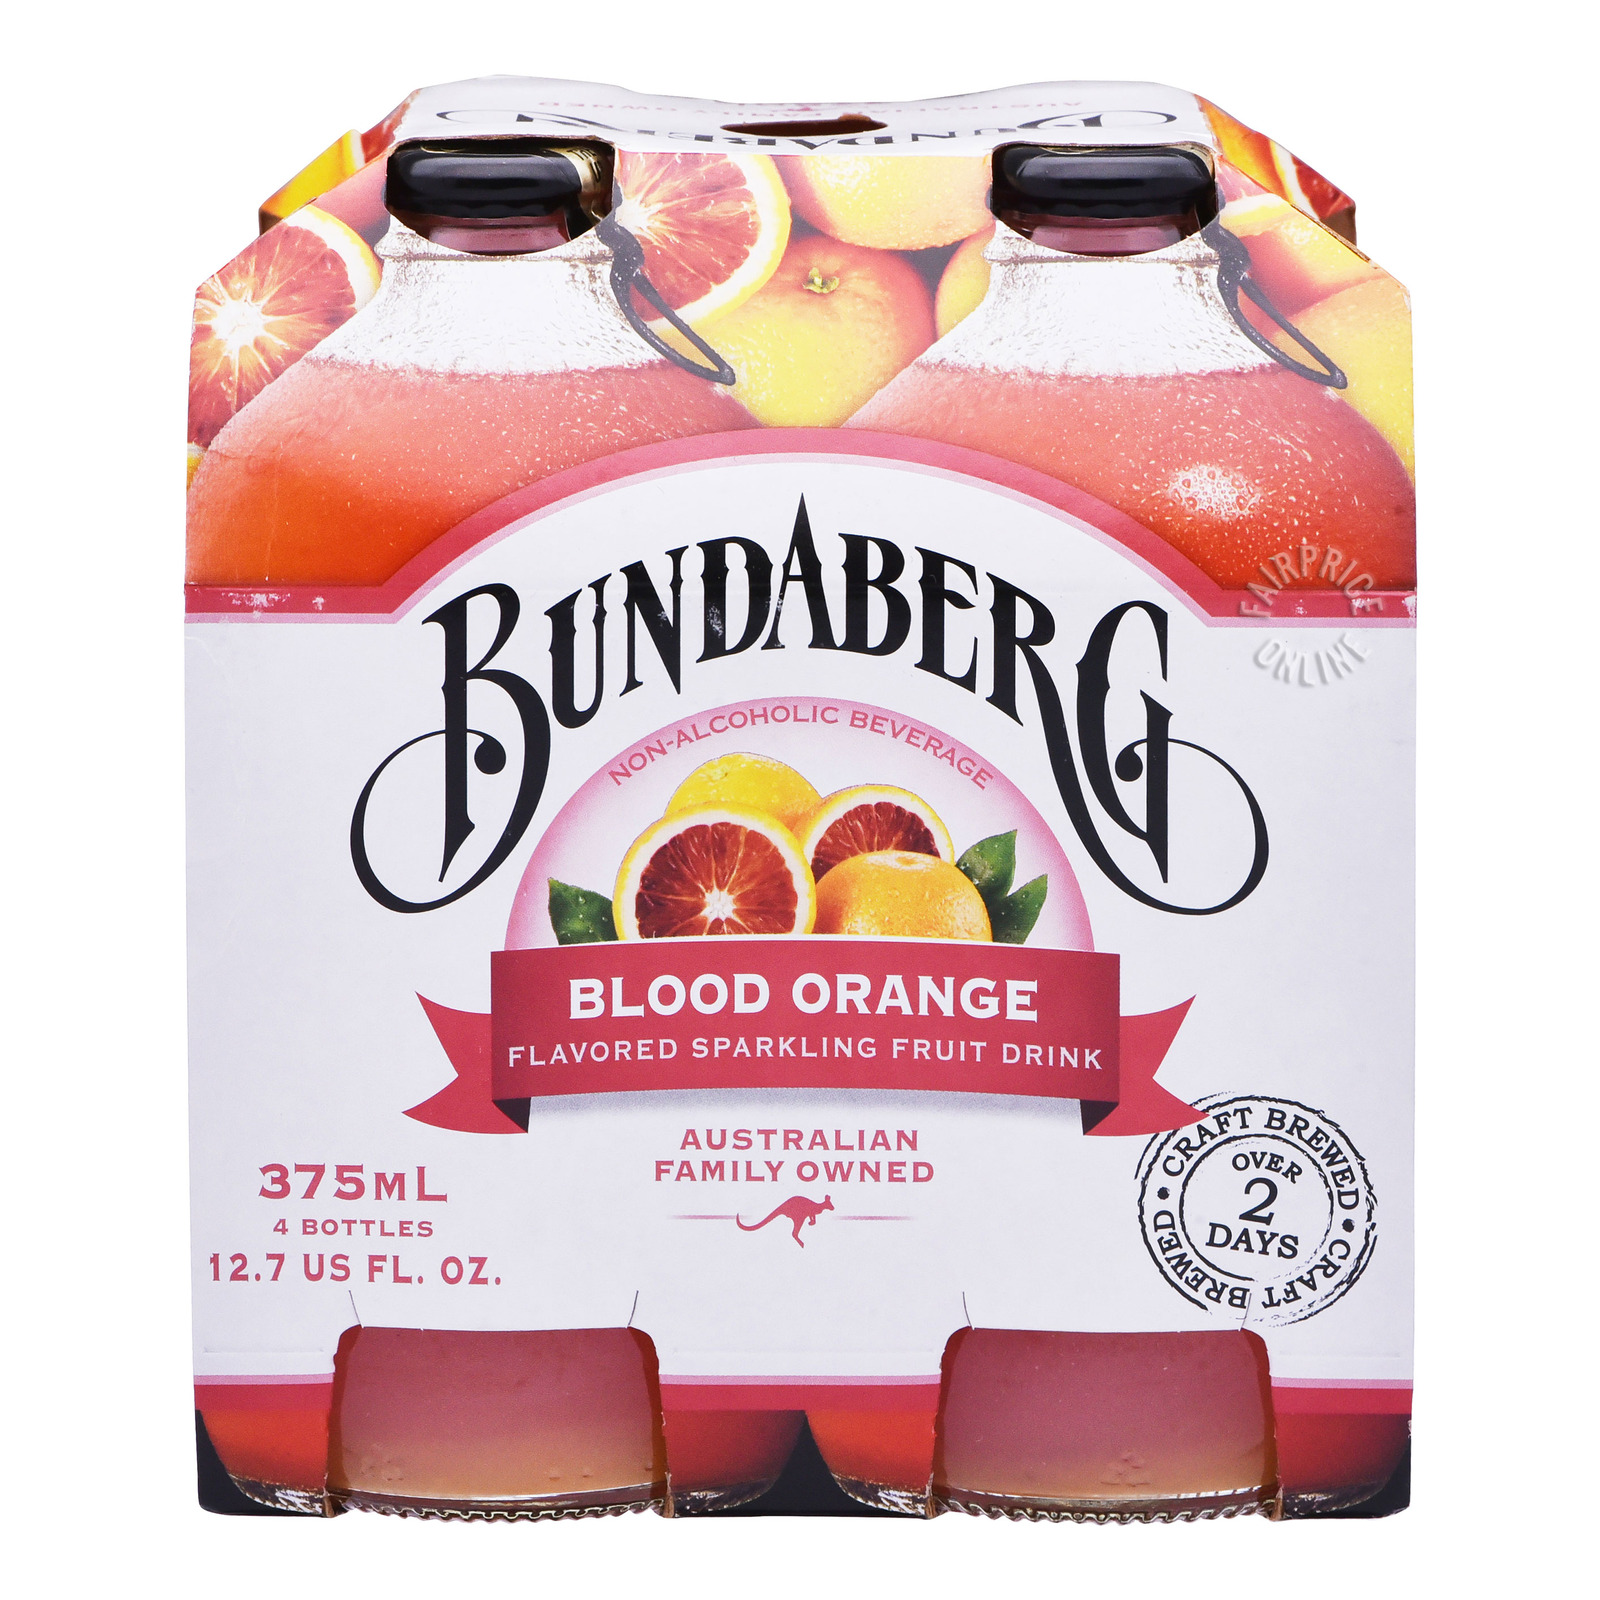 Bundaberg Sparkling Fruit Bottle Drink - Blood Orange